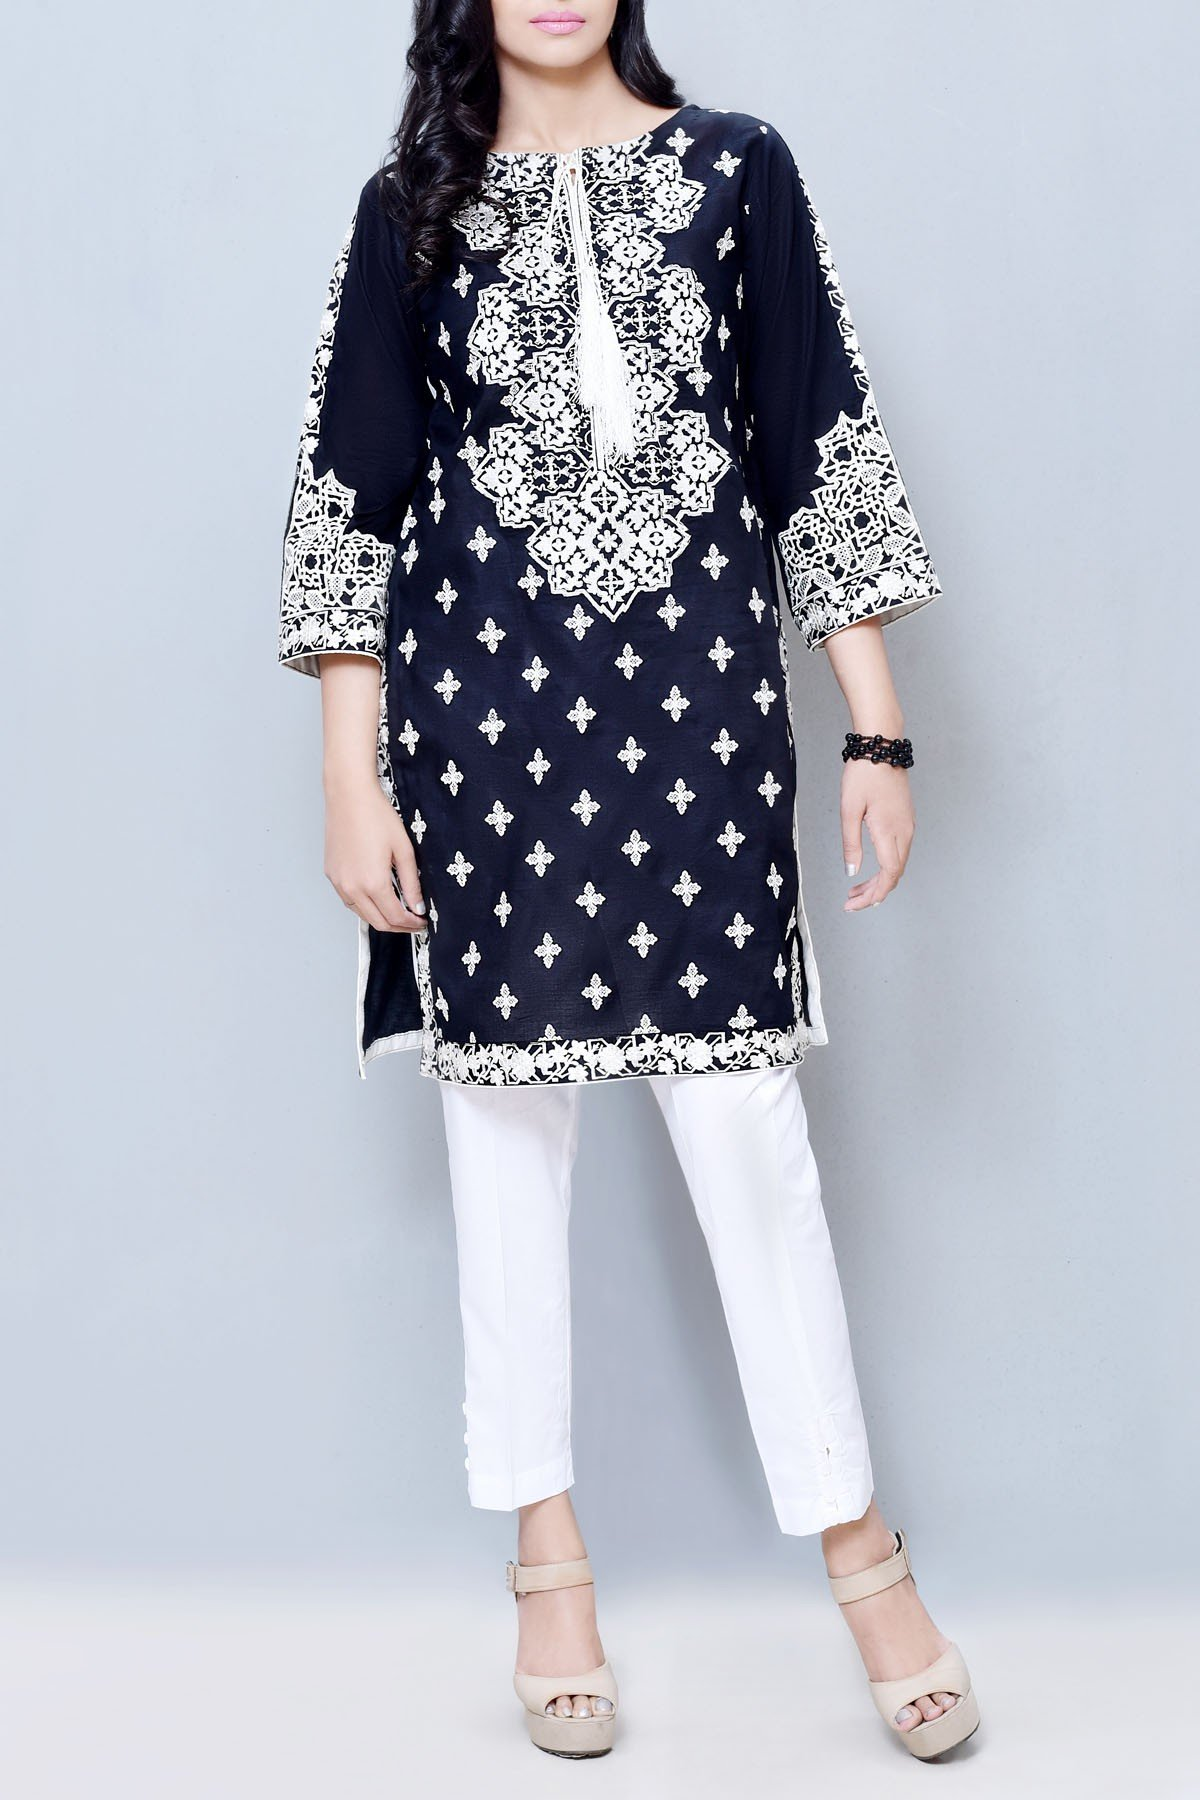 Mausummery Best Lawn Dresses Spring Summer 2016-2017 Collection (12)